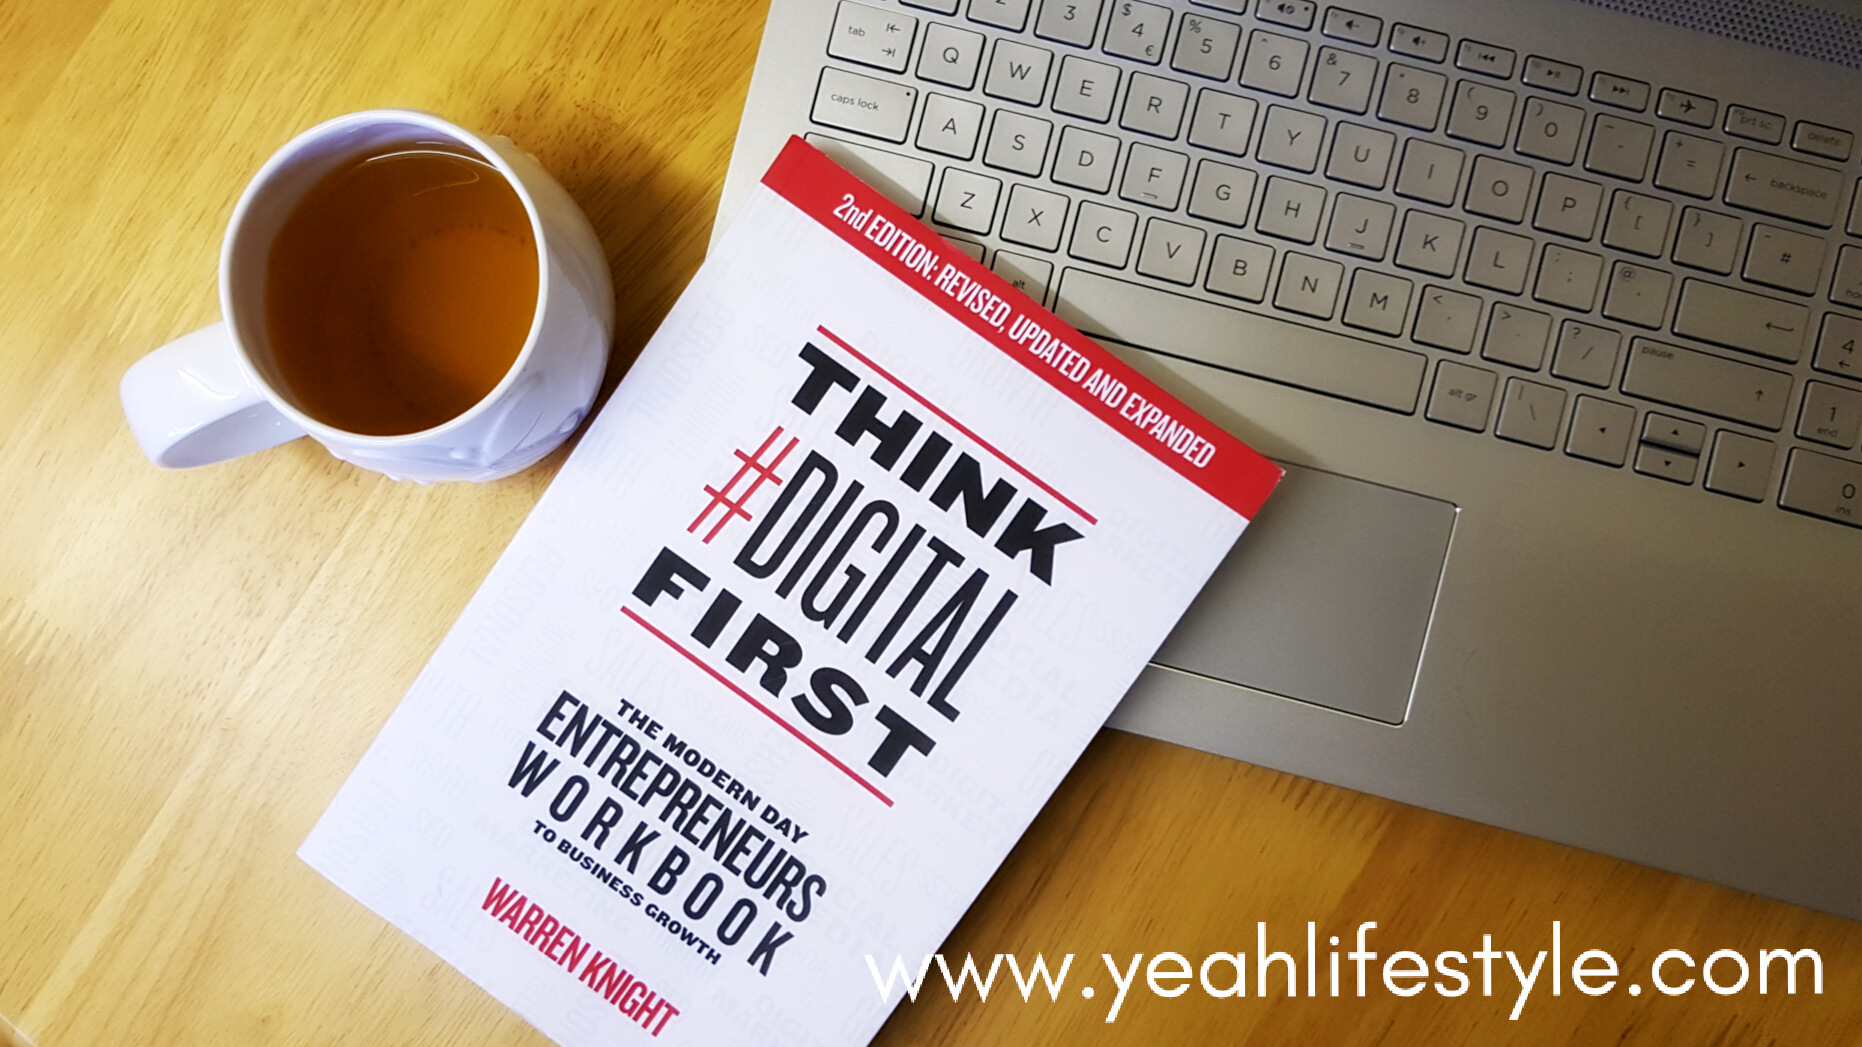 Think-Digital-First-Book-Blogger-Review-Yeah-Lifestyle